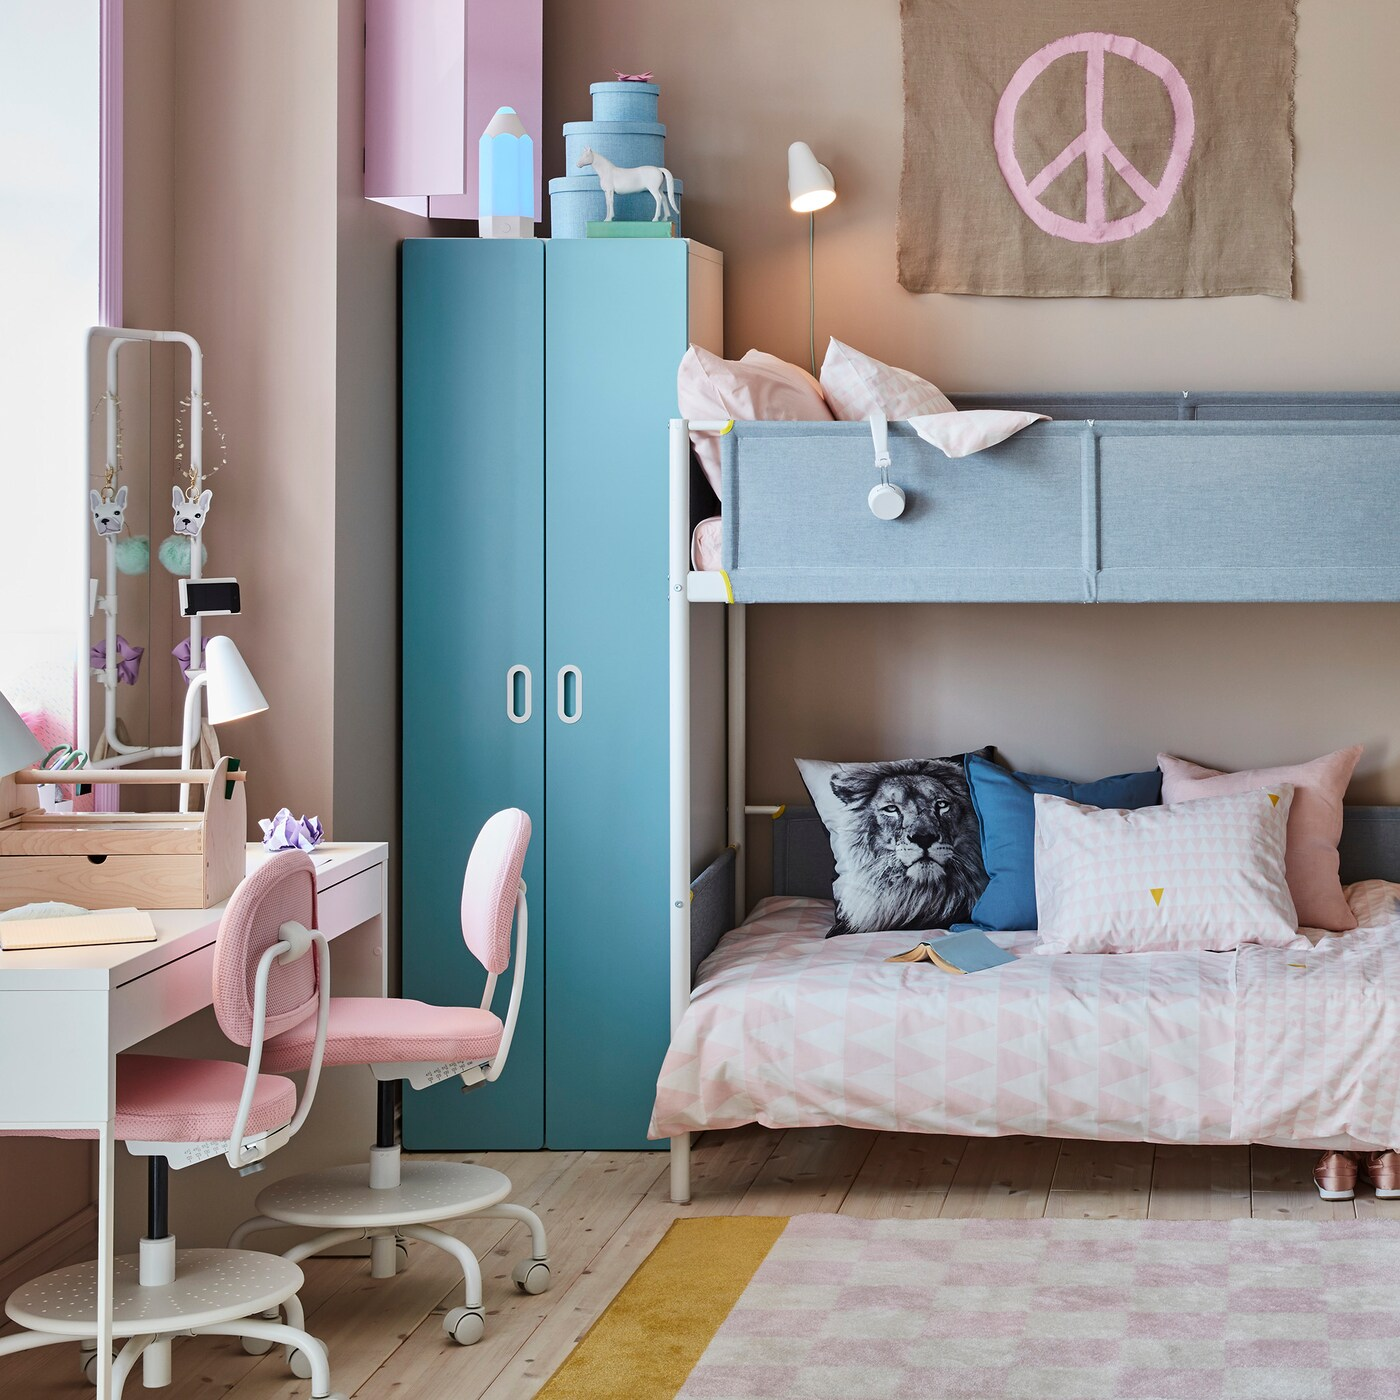 Children's room with a bunk bed with bedding and pillows, a closet beside it, a chest of drawers and a desk and chairs.